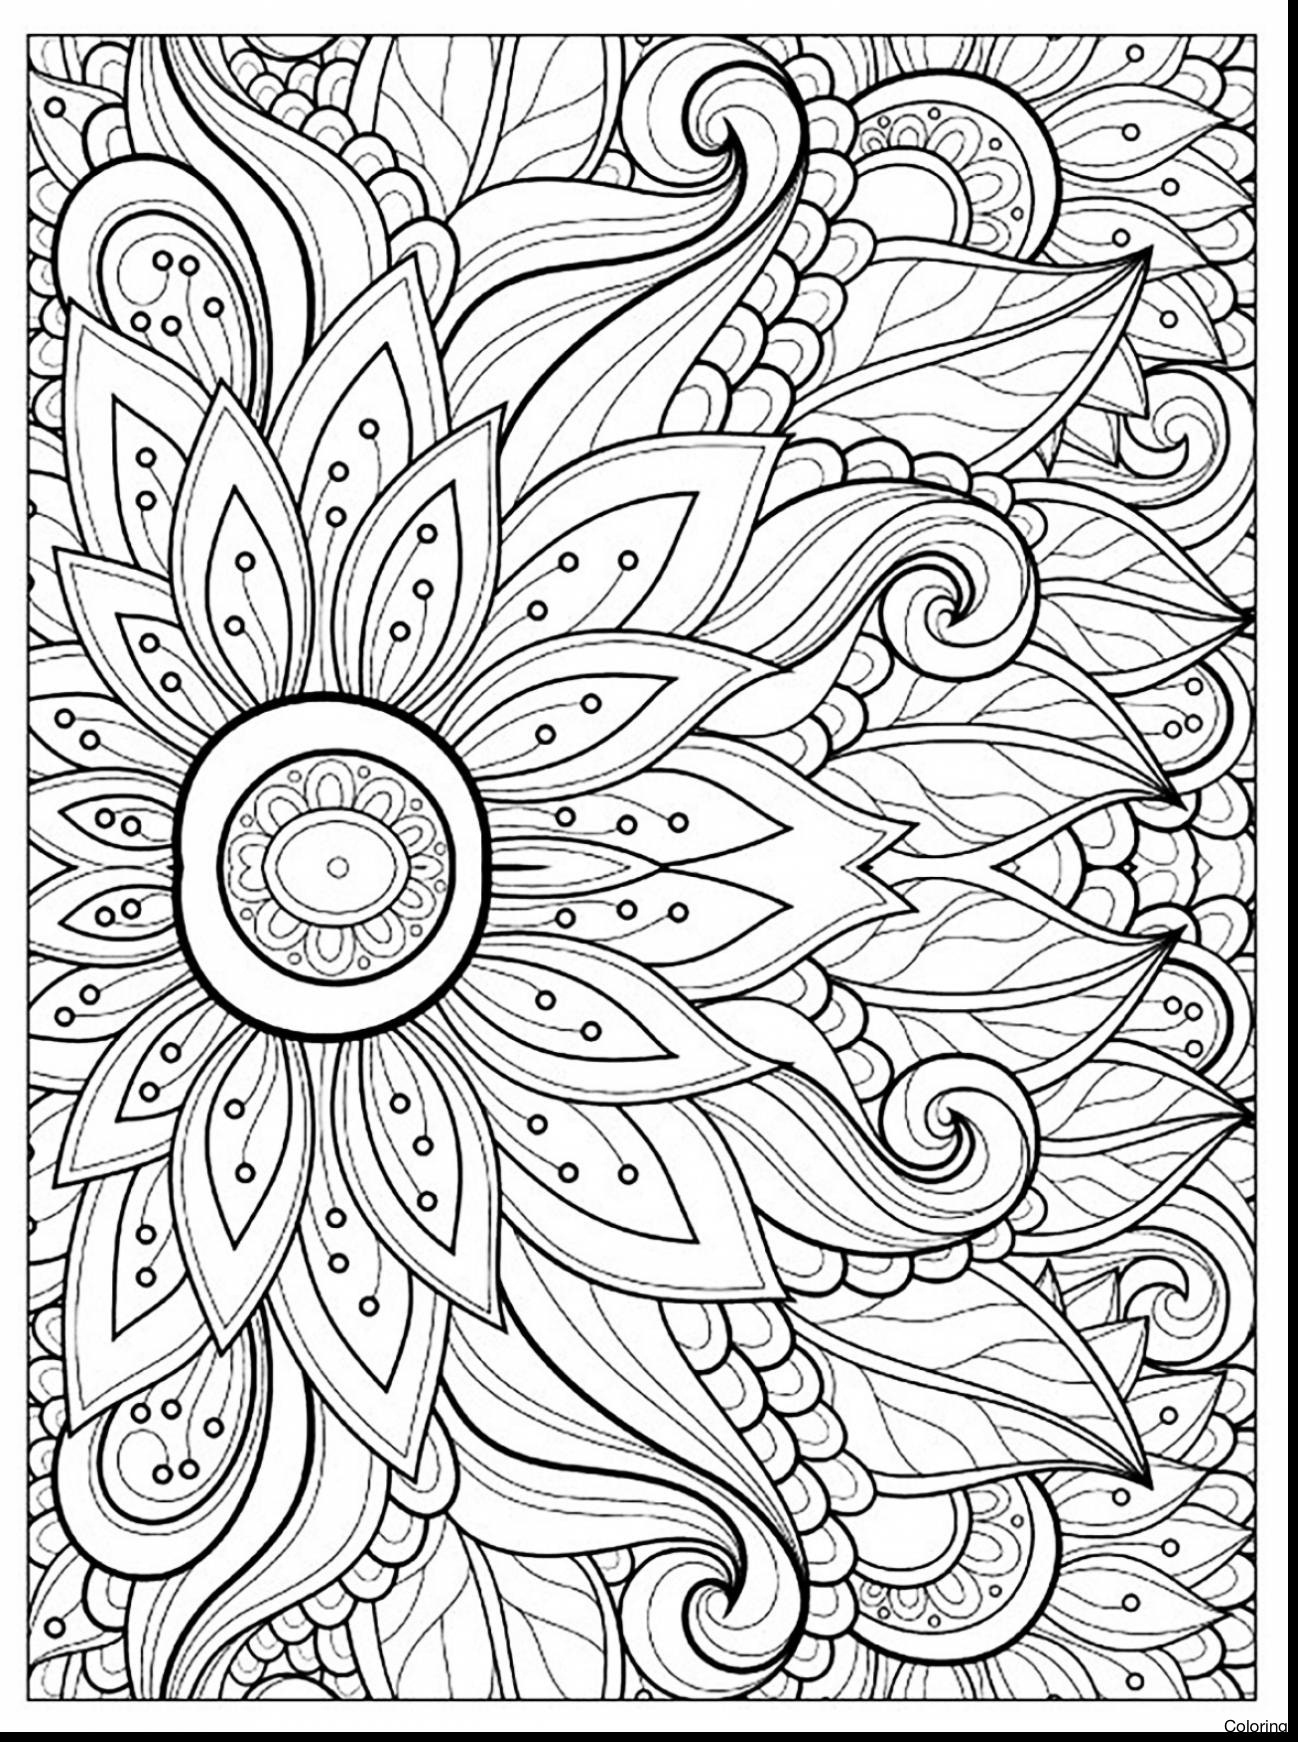 Coloring Ideas : Adult Coloring Pages Pdf L Free Printable Holiday - Free Printable Coloring Pages For Adults Pdf